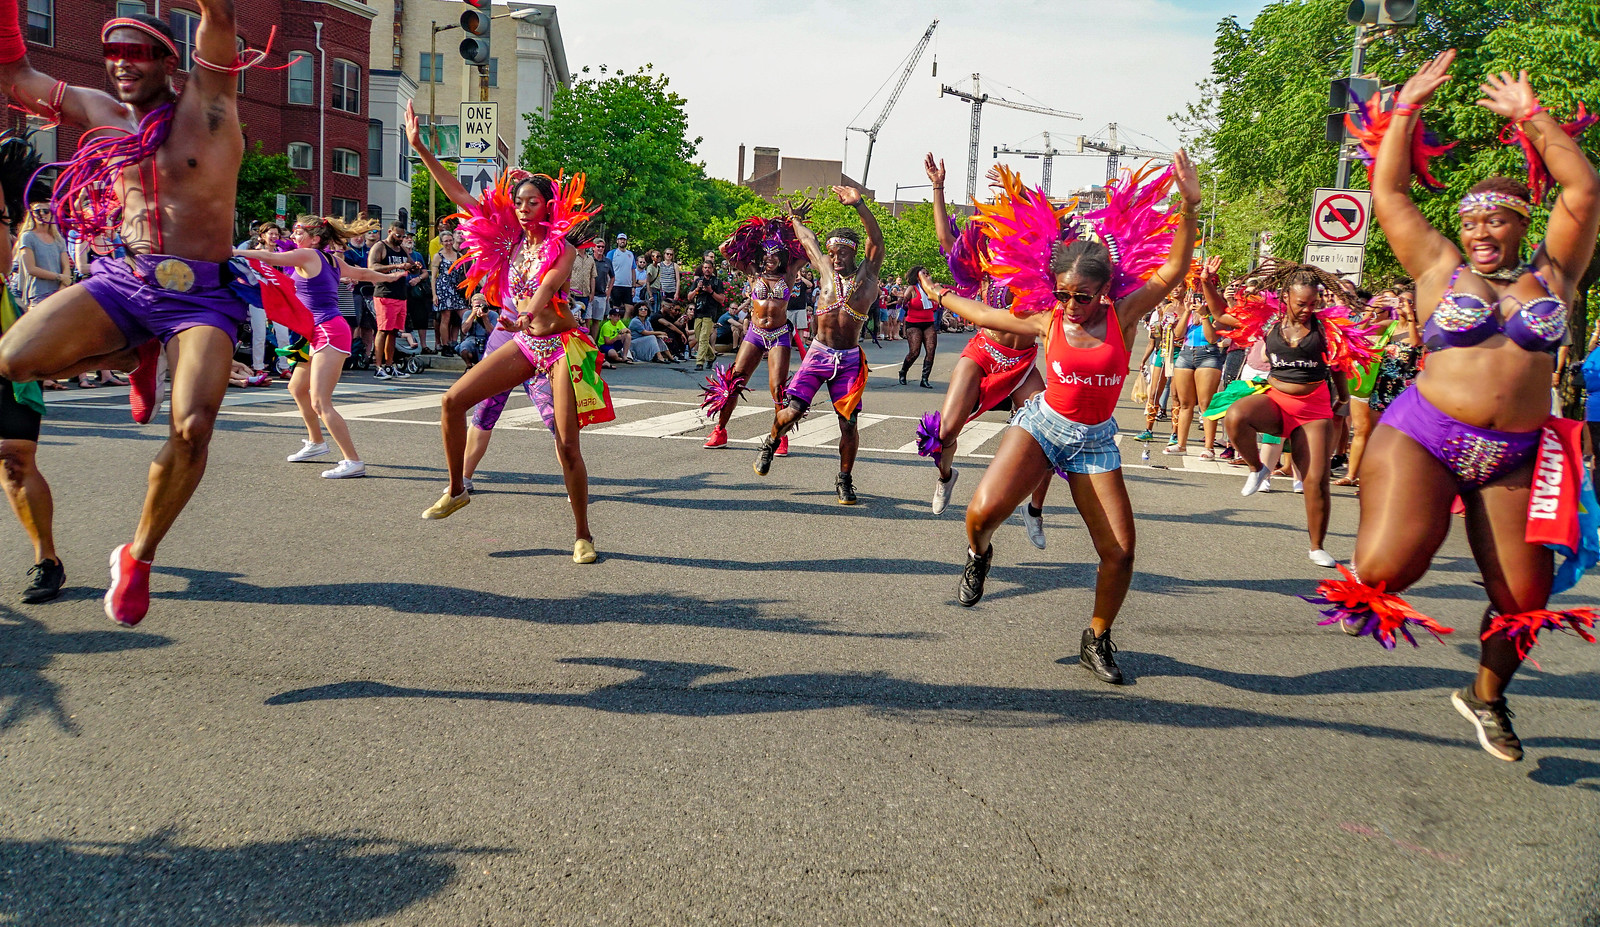 Thanks for Publishing my Photograph, in Under New Leadership, The Funk Parade Is Returning In May | DCist